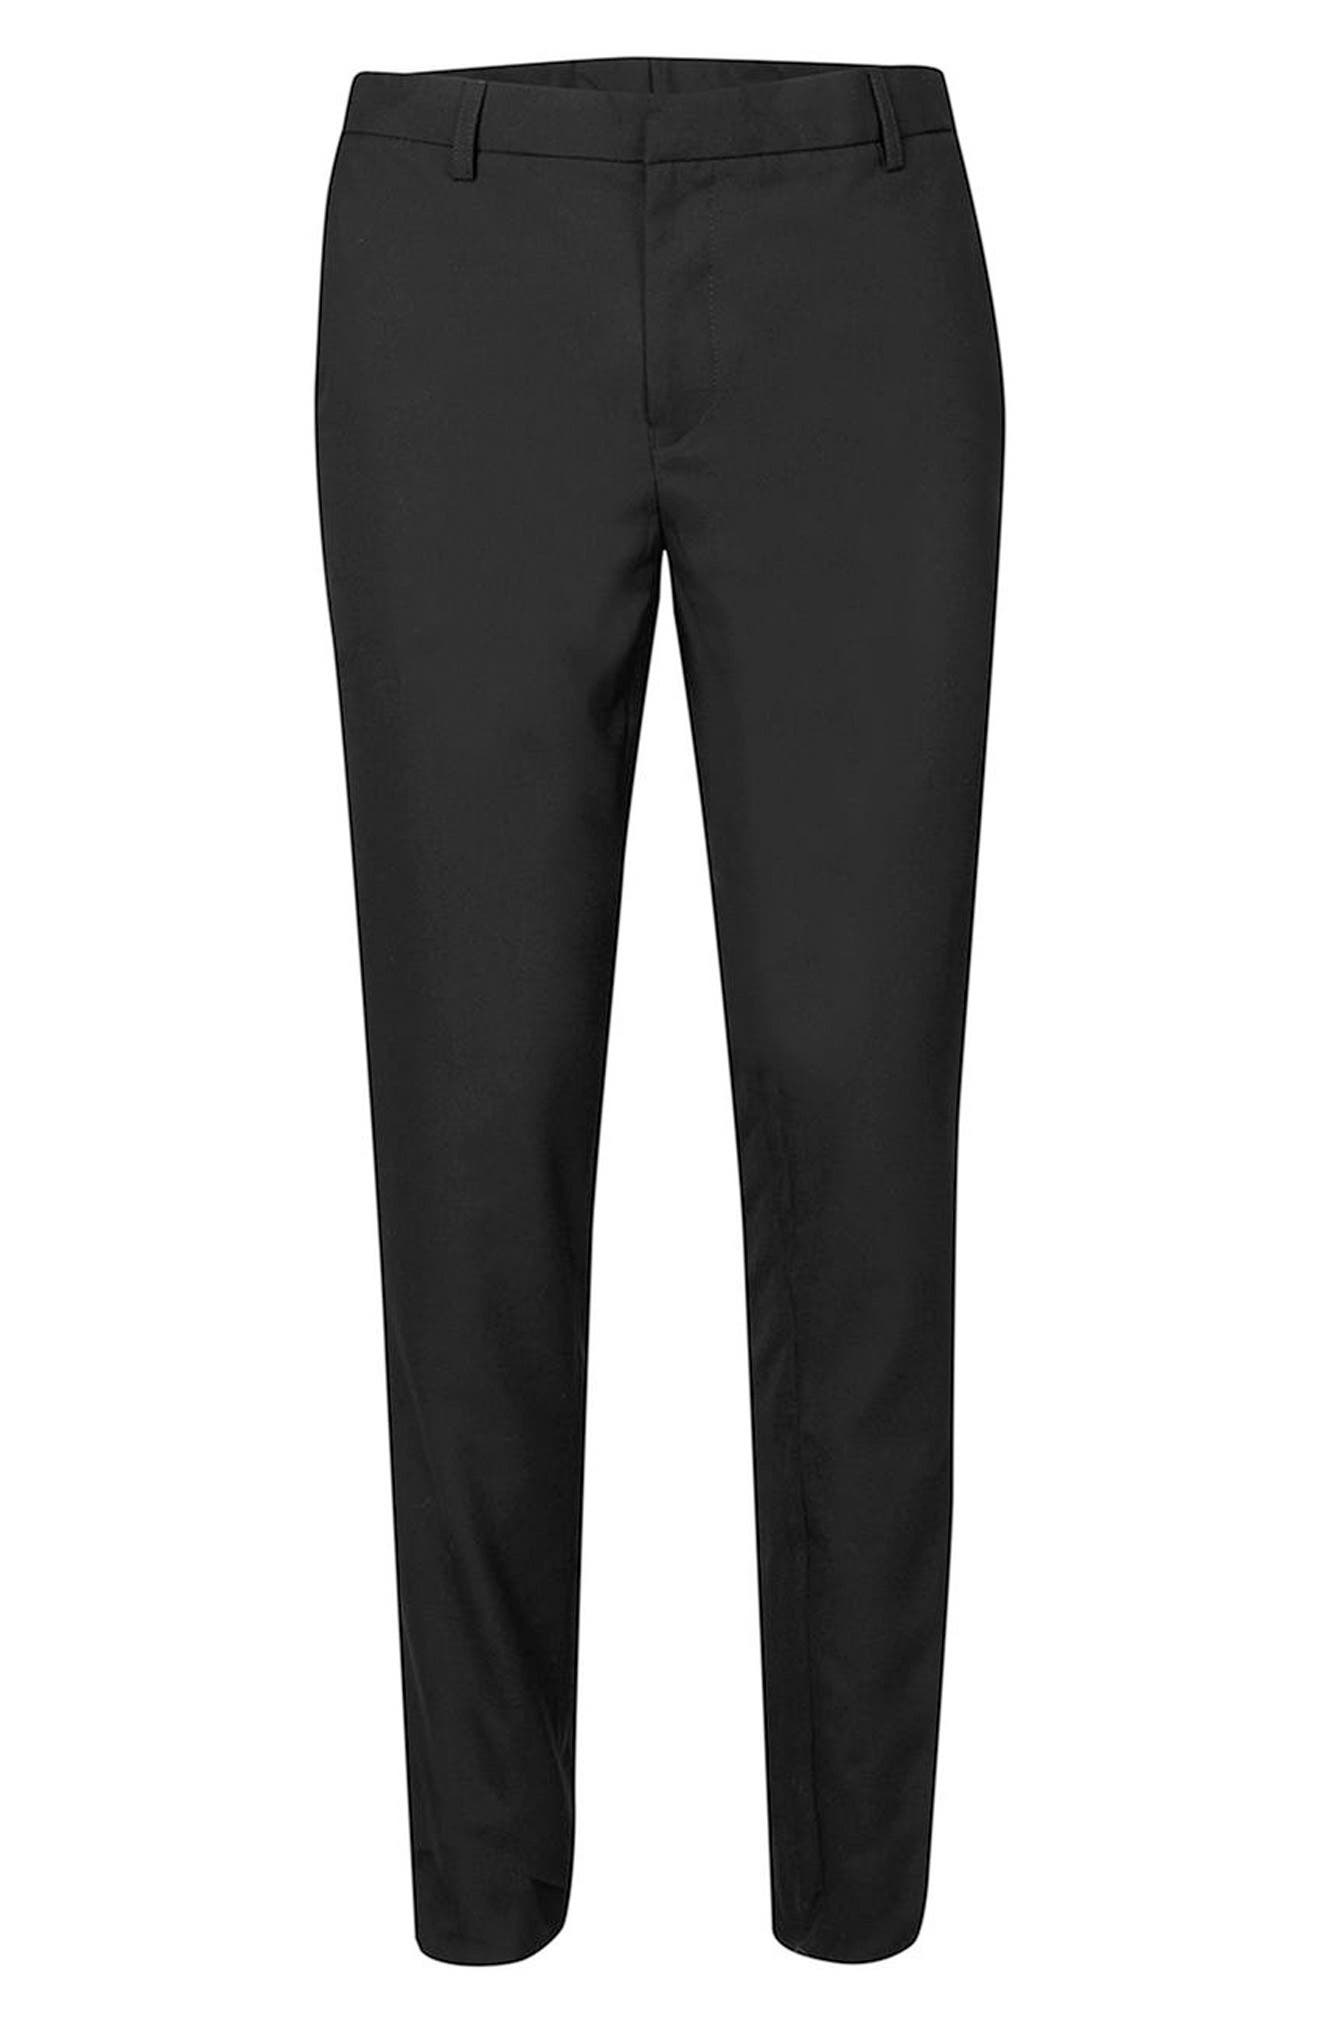 Skinny Fit Pants,                             Alternate thumbnail 4, color,                             001